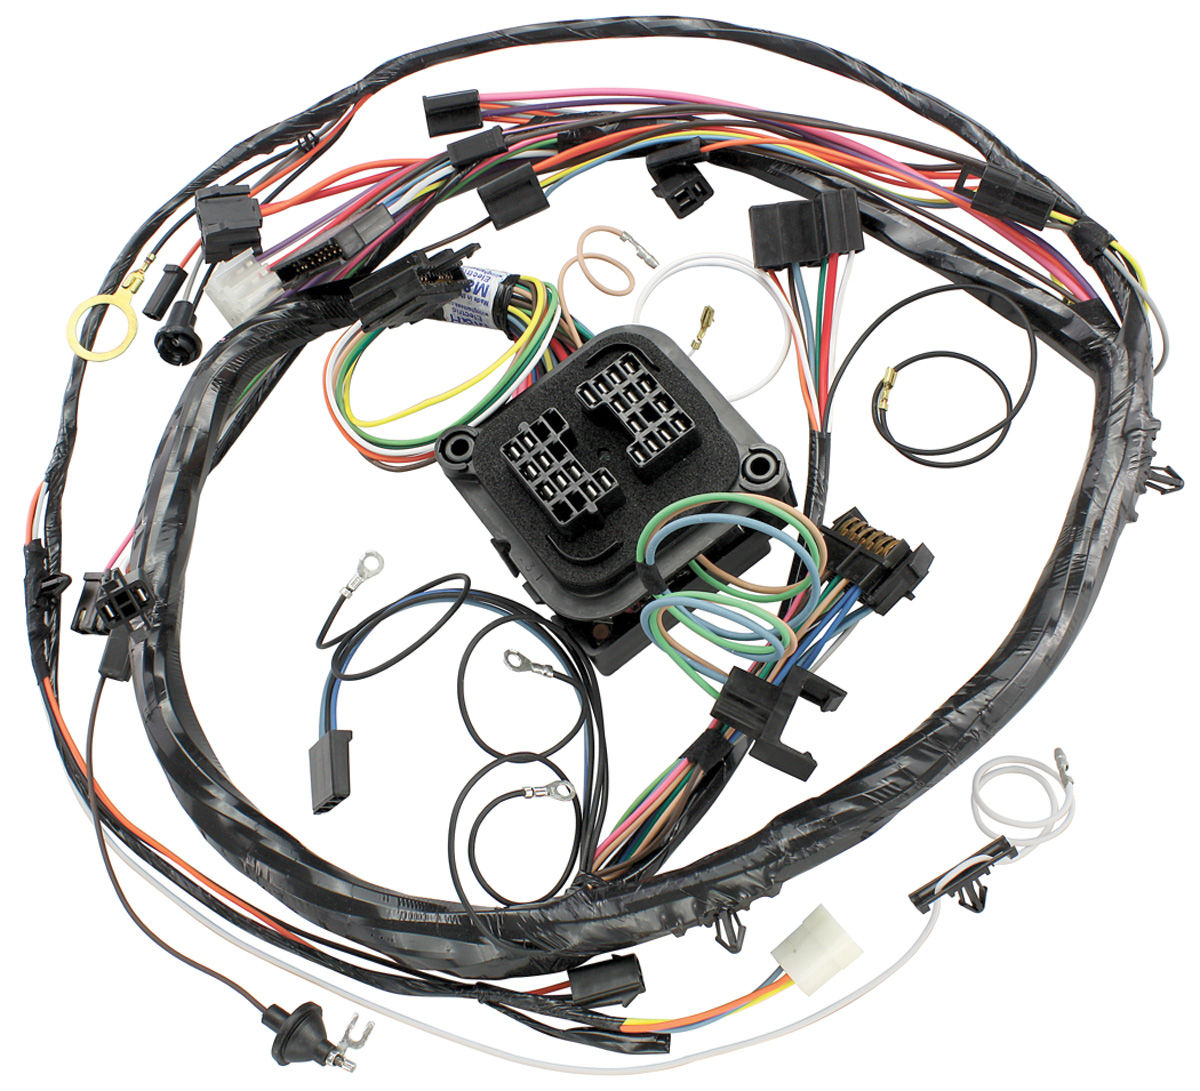 1971 chevelle wiring harness 1971 chevelle and el camino ss dash harness with factory gauges  1971 chevelle and el camino ss dash